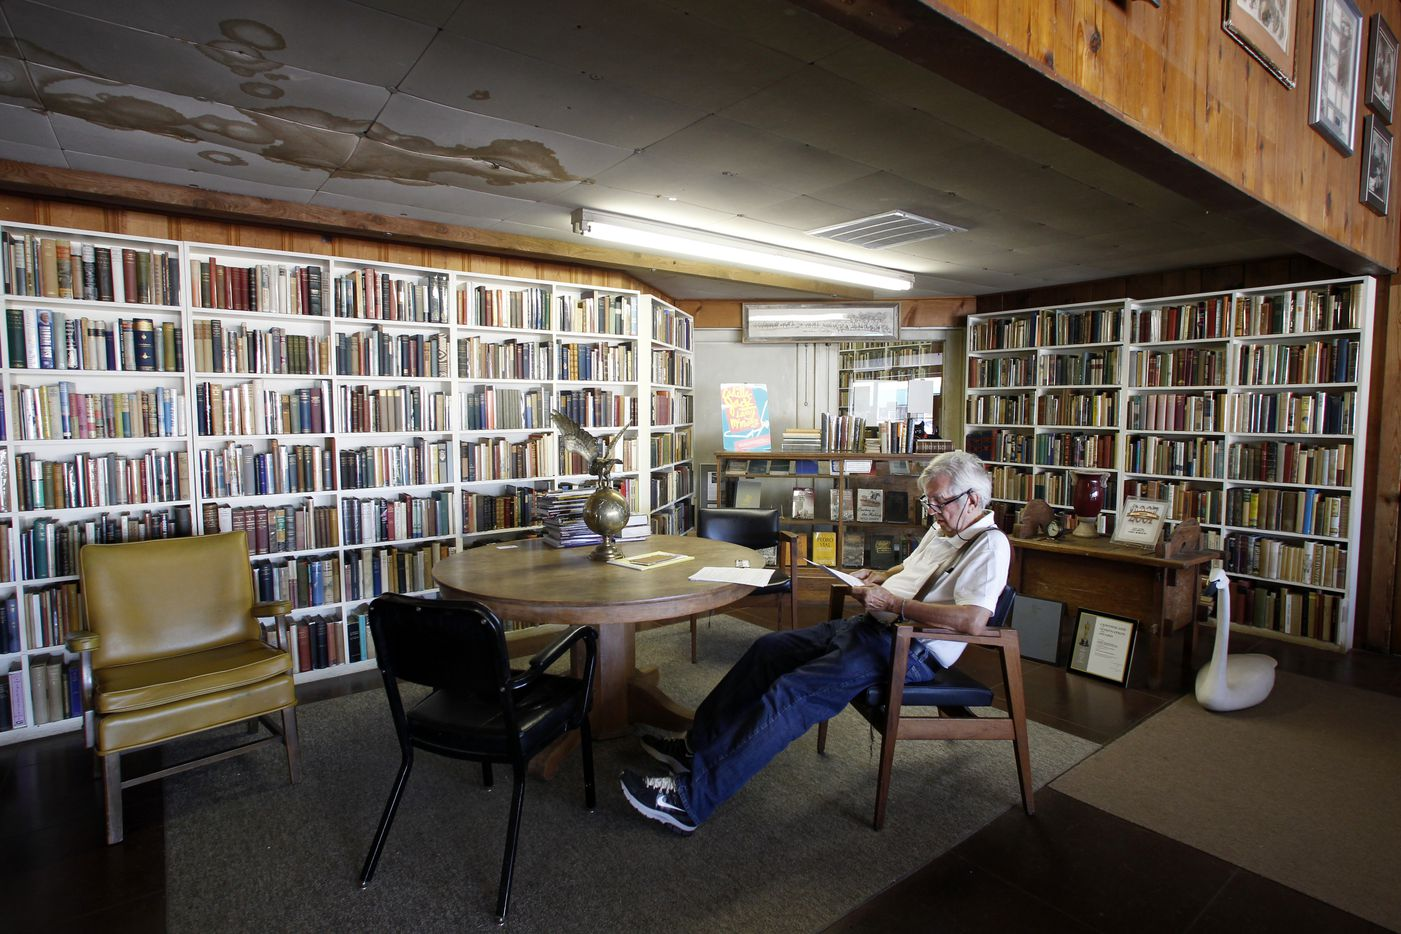 Pulitzer prize winning author Larry McMurtry relaxes and reads in Booked Up Inc. 1 bookstore, during the week before he auctioned off a major part of his book collection.